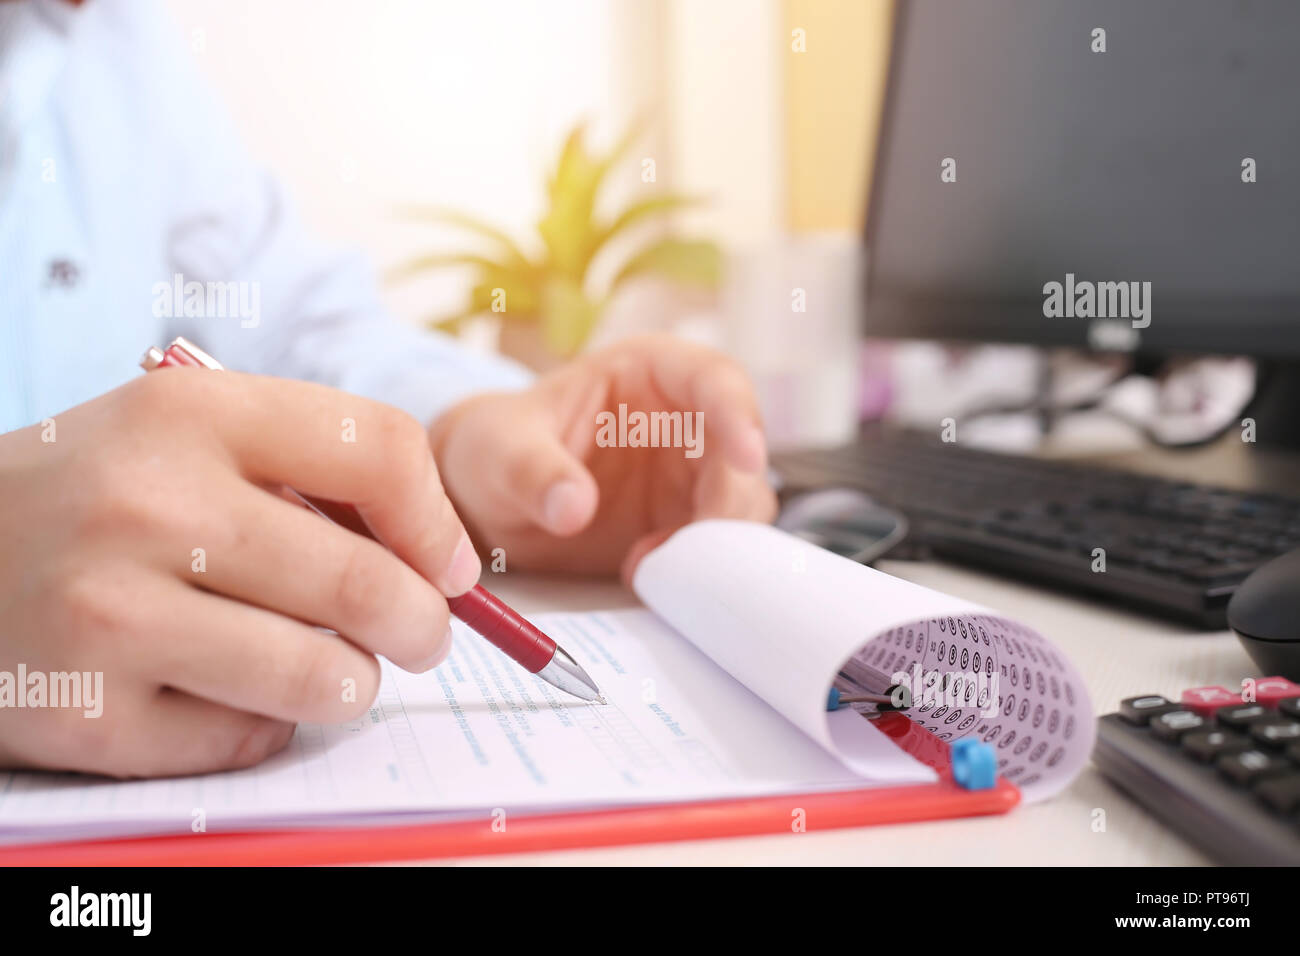 Man is filling form with pen. Picture of computer and keyboard with form on the clipboard. Stock Photo